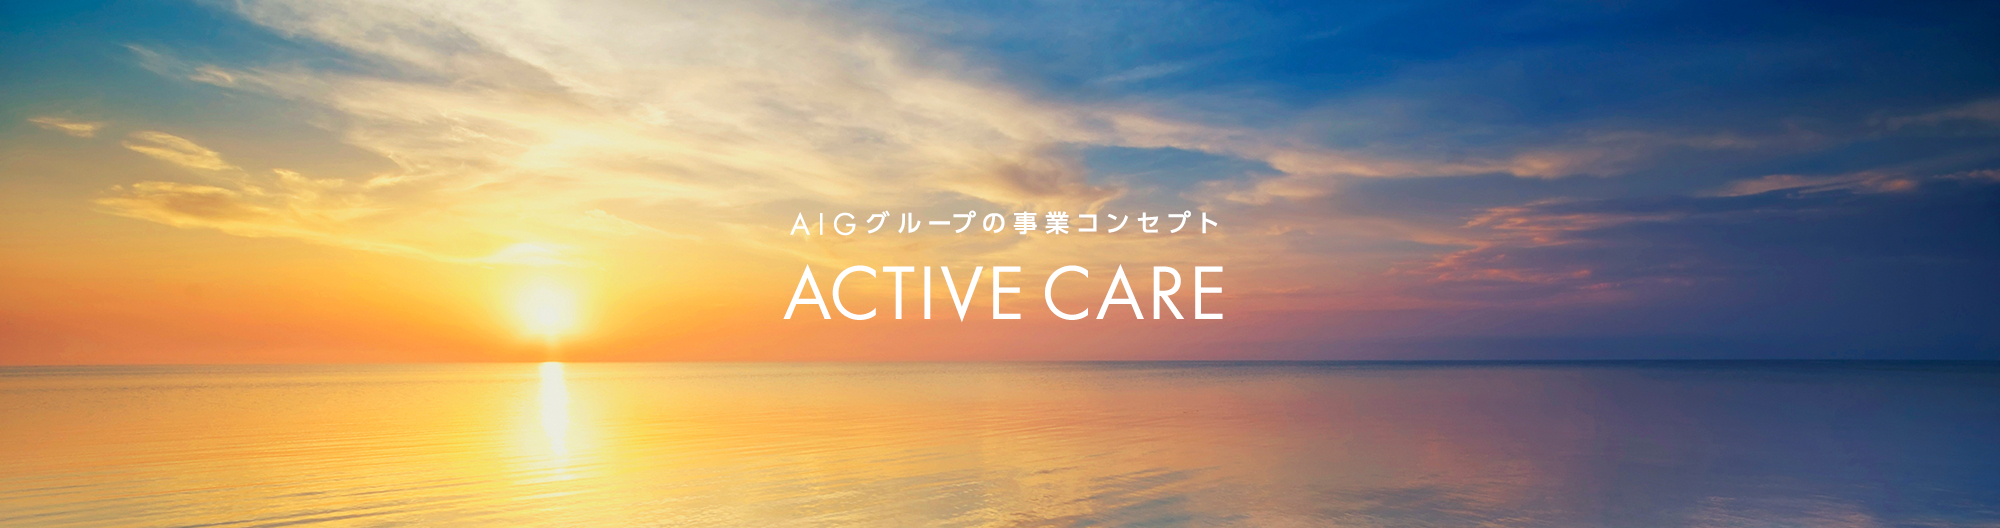 Actrive Care